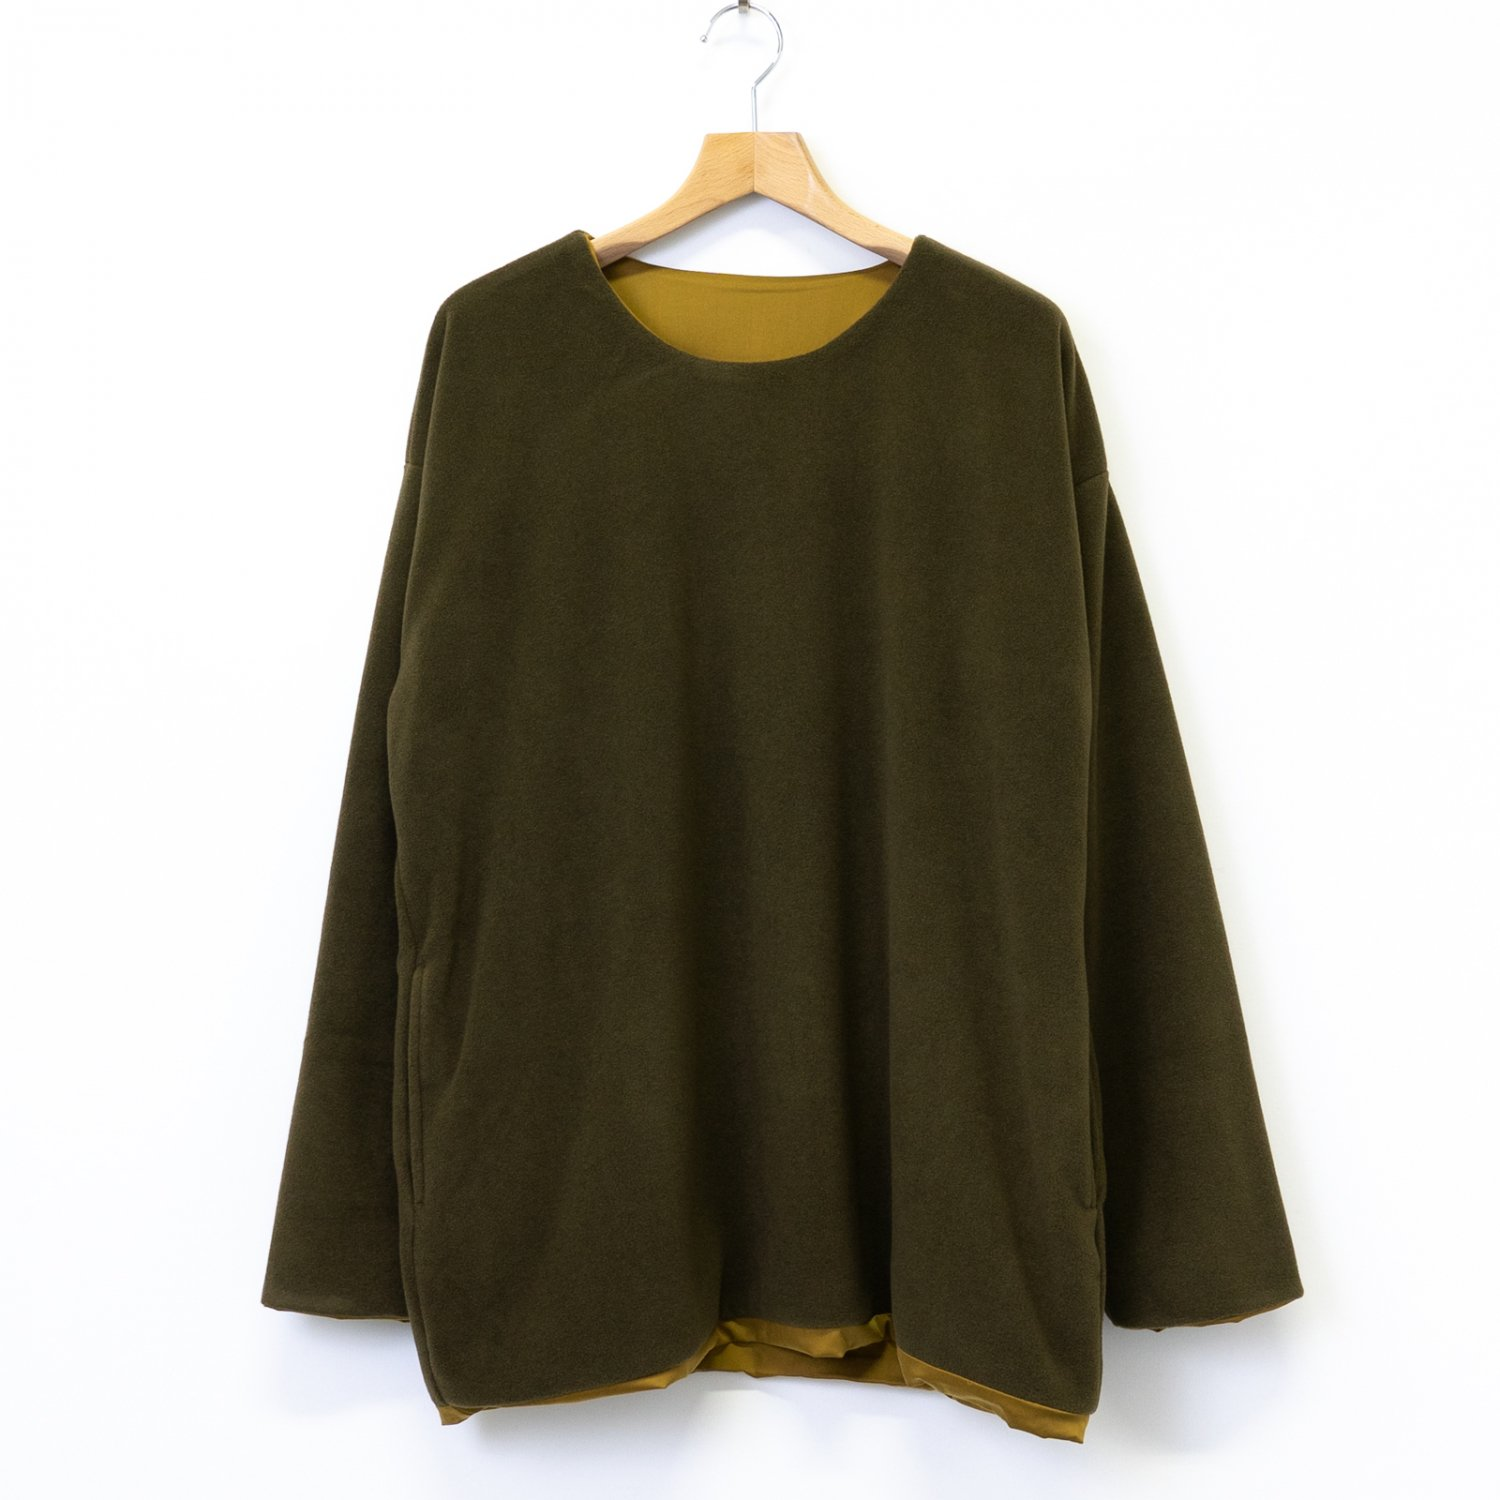 ts(s) * Italian Polyester Viscose Fleece Jersey Reversible Easy Shirt * Olive